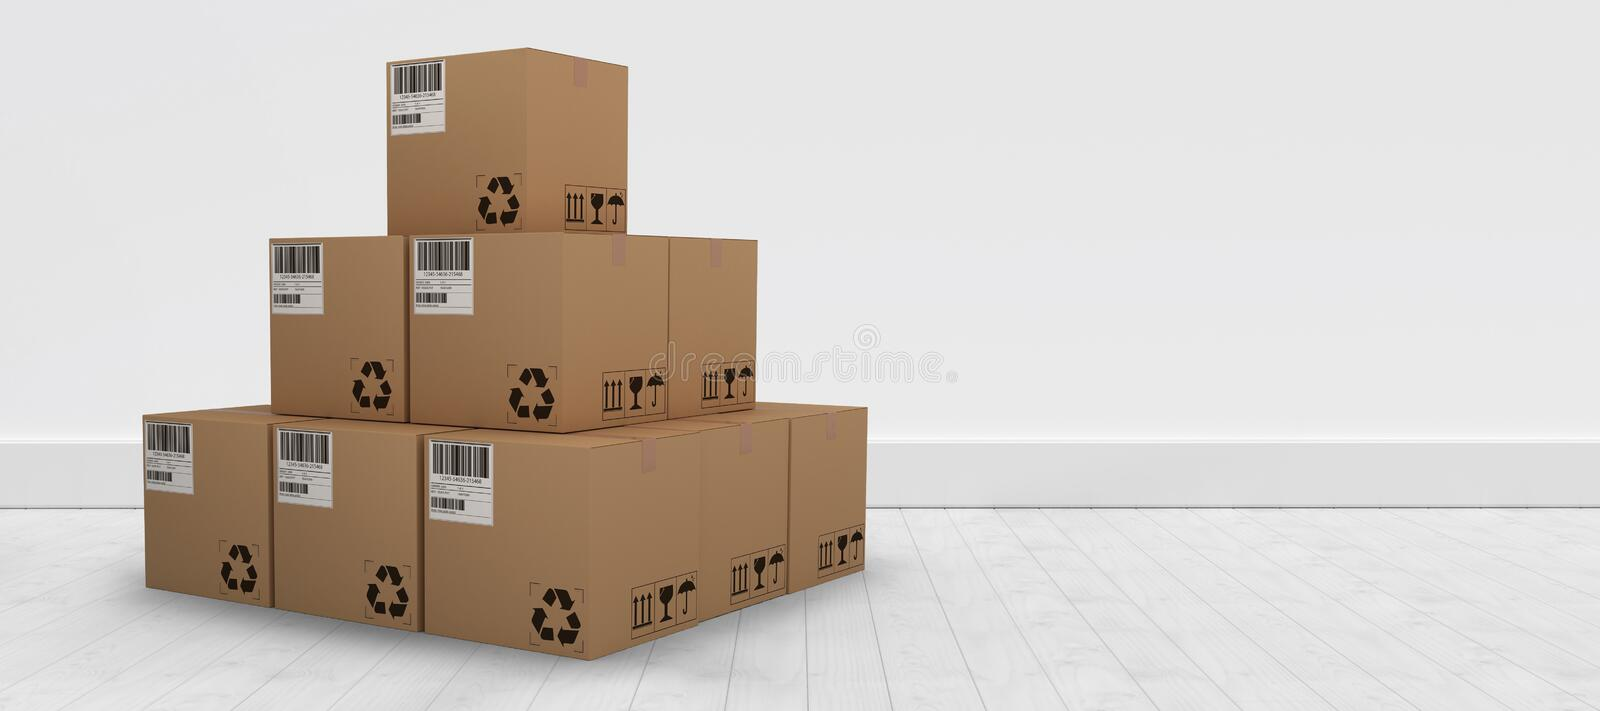 Composite 3d image of pile of brown packed cardboard boxes. Pile of brown packed cardboard 3D boxes against gray flooring and wall royalty free illustration